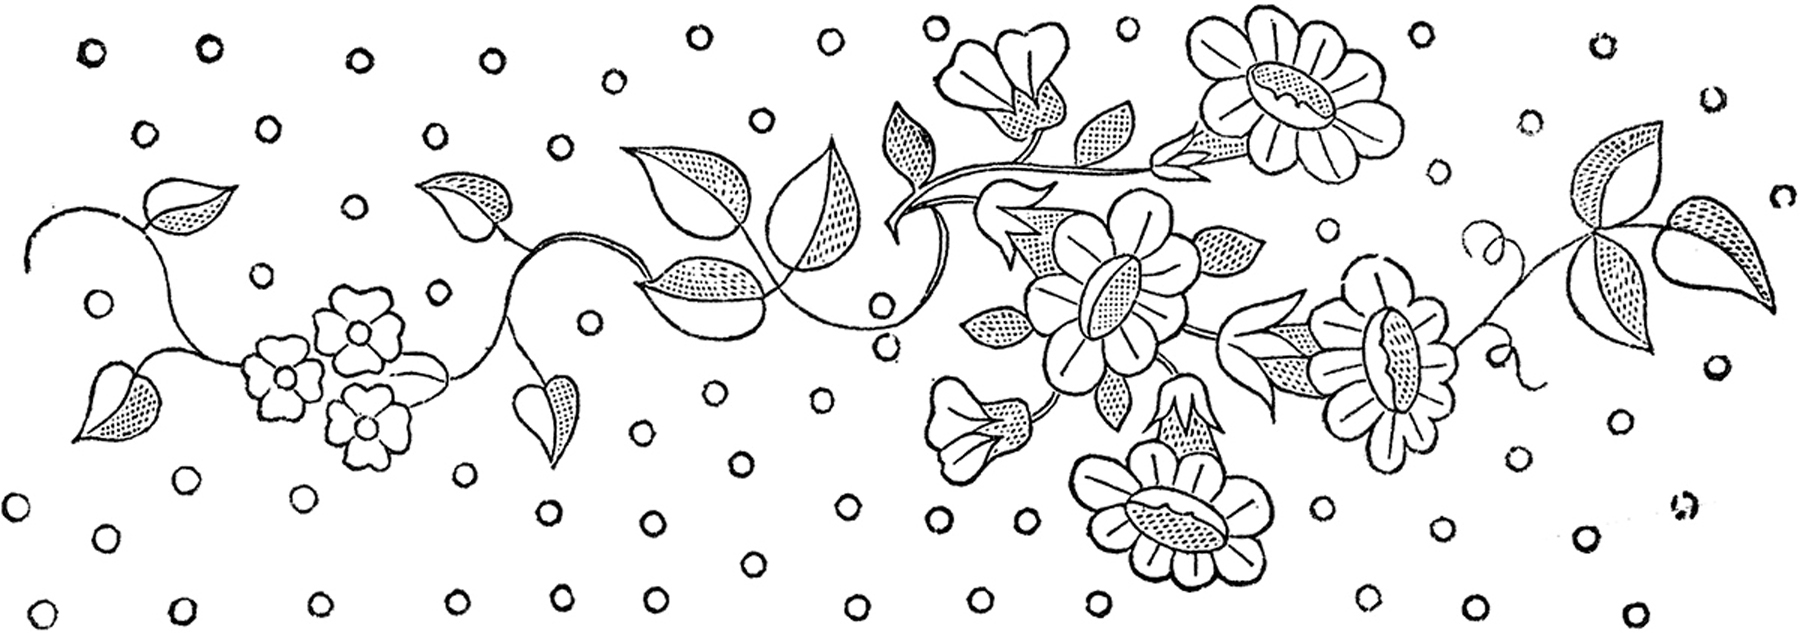 Free Hand Embroidery Pattern Free Printable Embroidery Patterns Hand 108 Images In